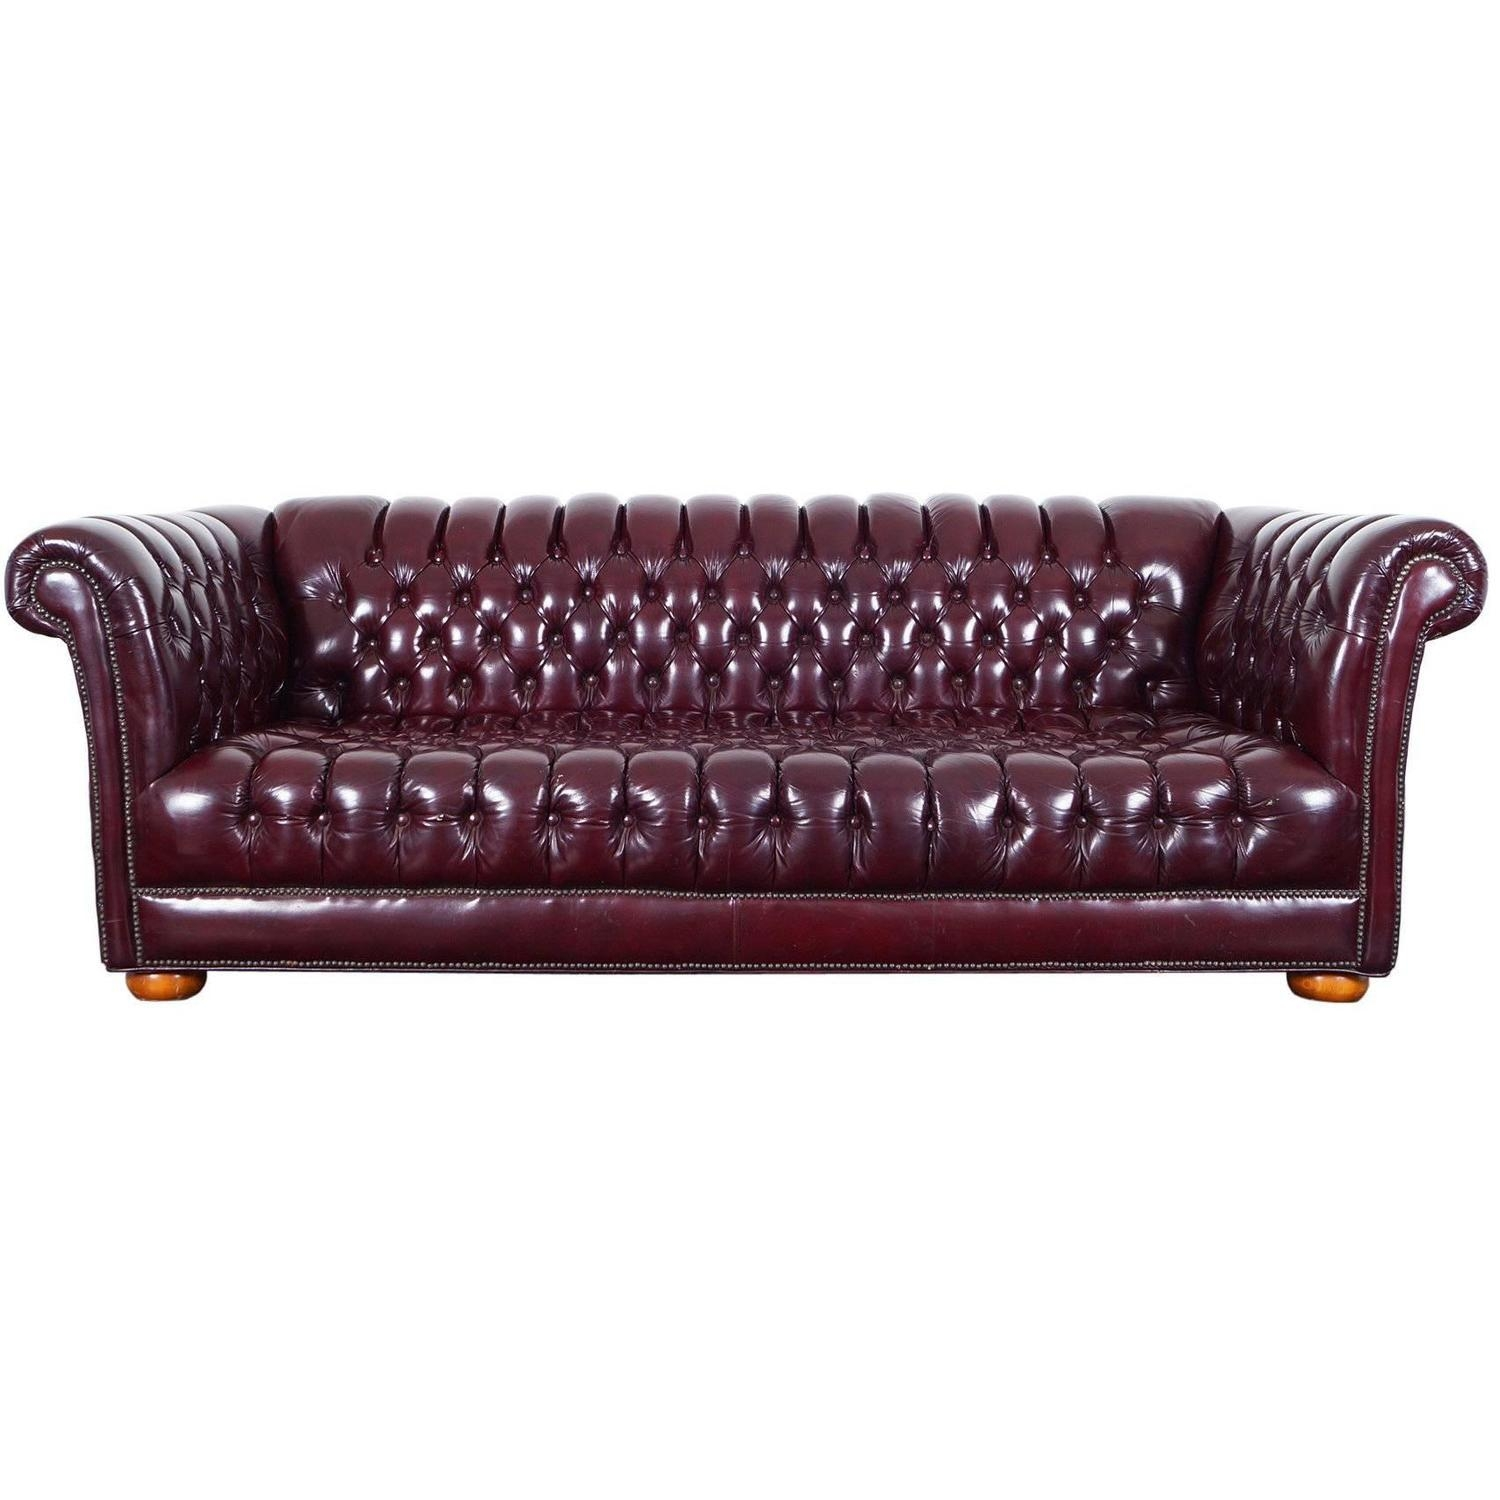 20 collection of vintage chesterfield sofas sofa ideas. Black Bedroom Furniture Sets. Home Design Ideas